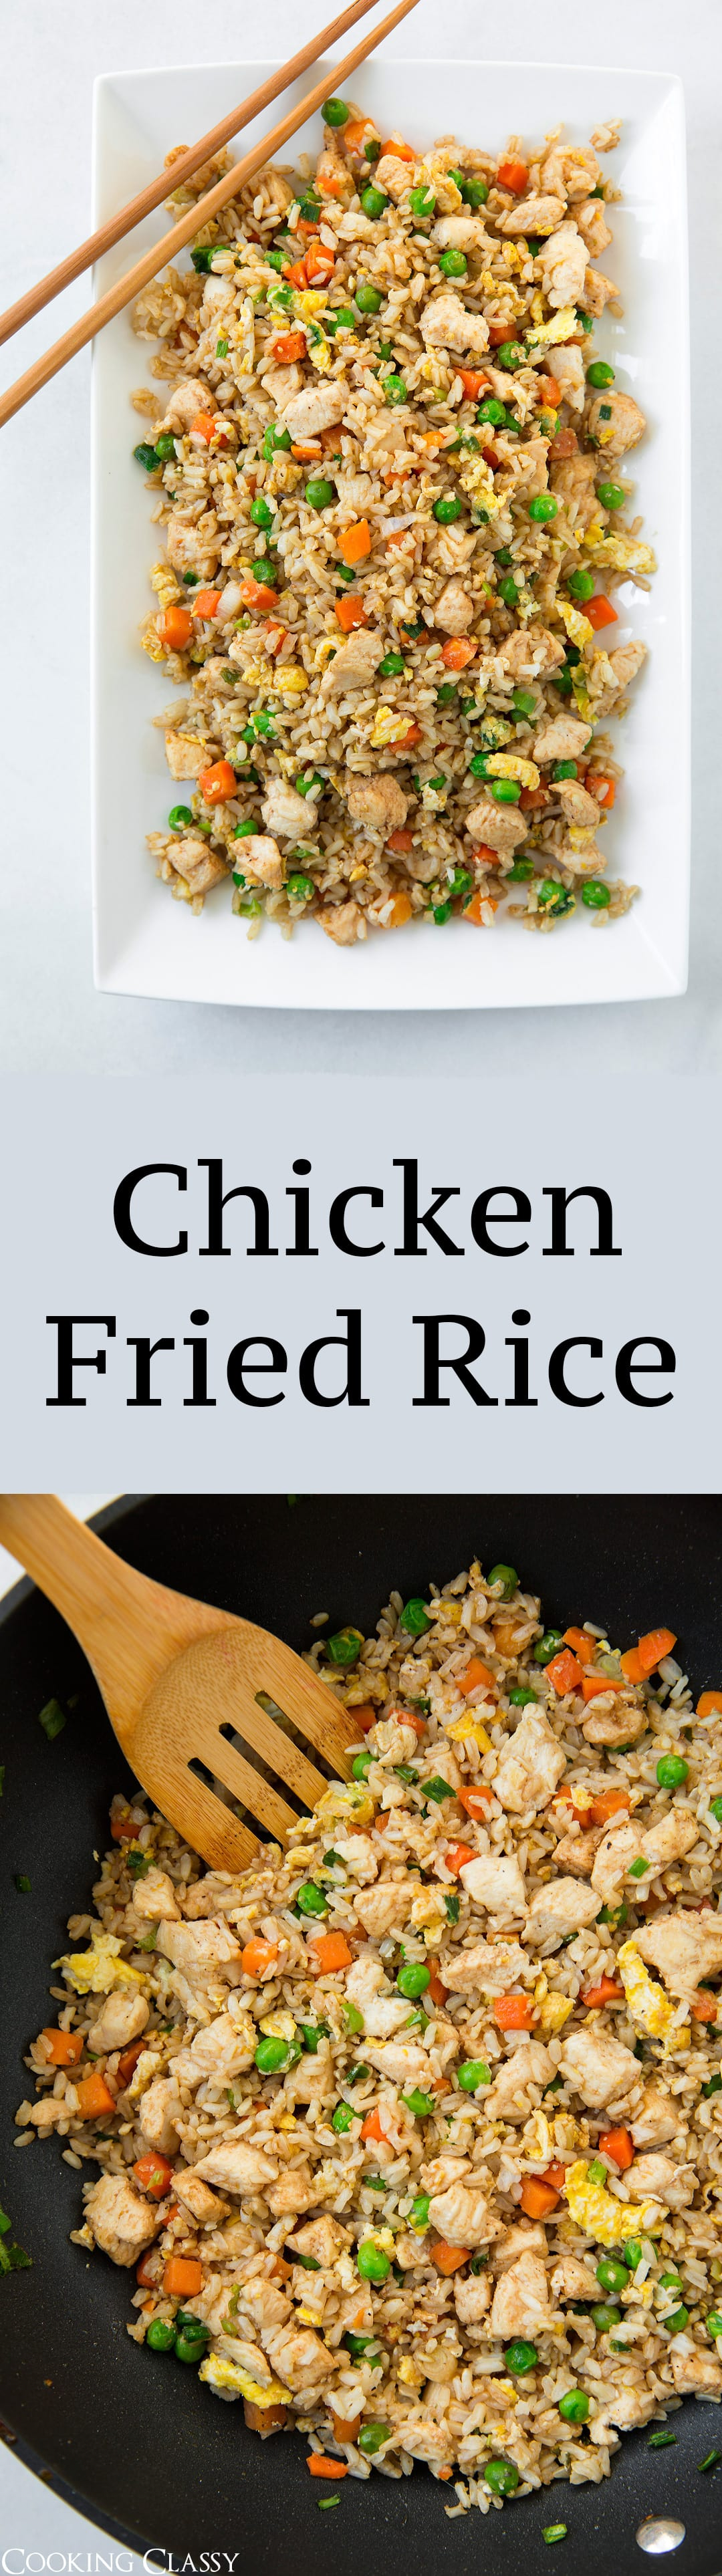 Chicken fried rice cooking classy nutrition disclaimer ccuart Image collections